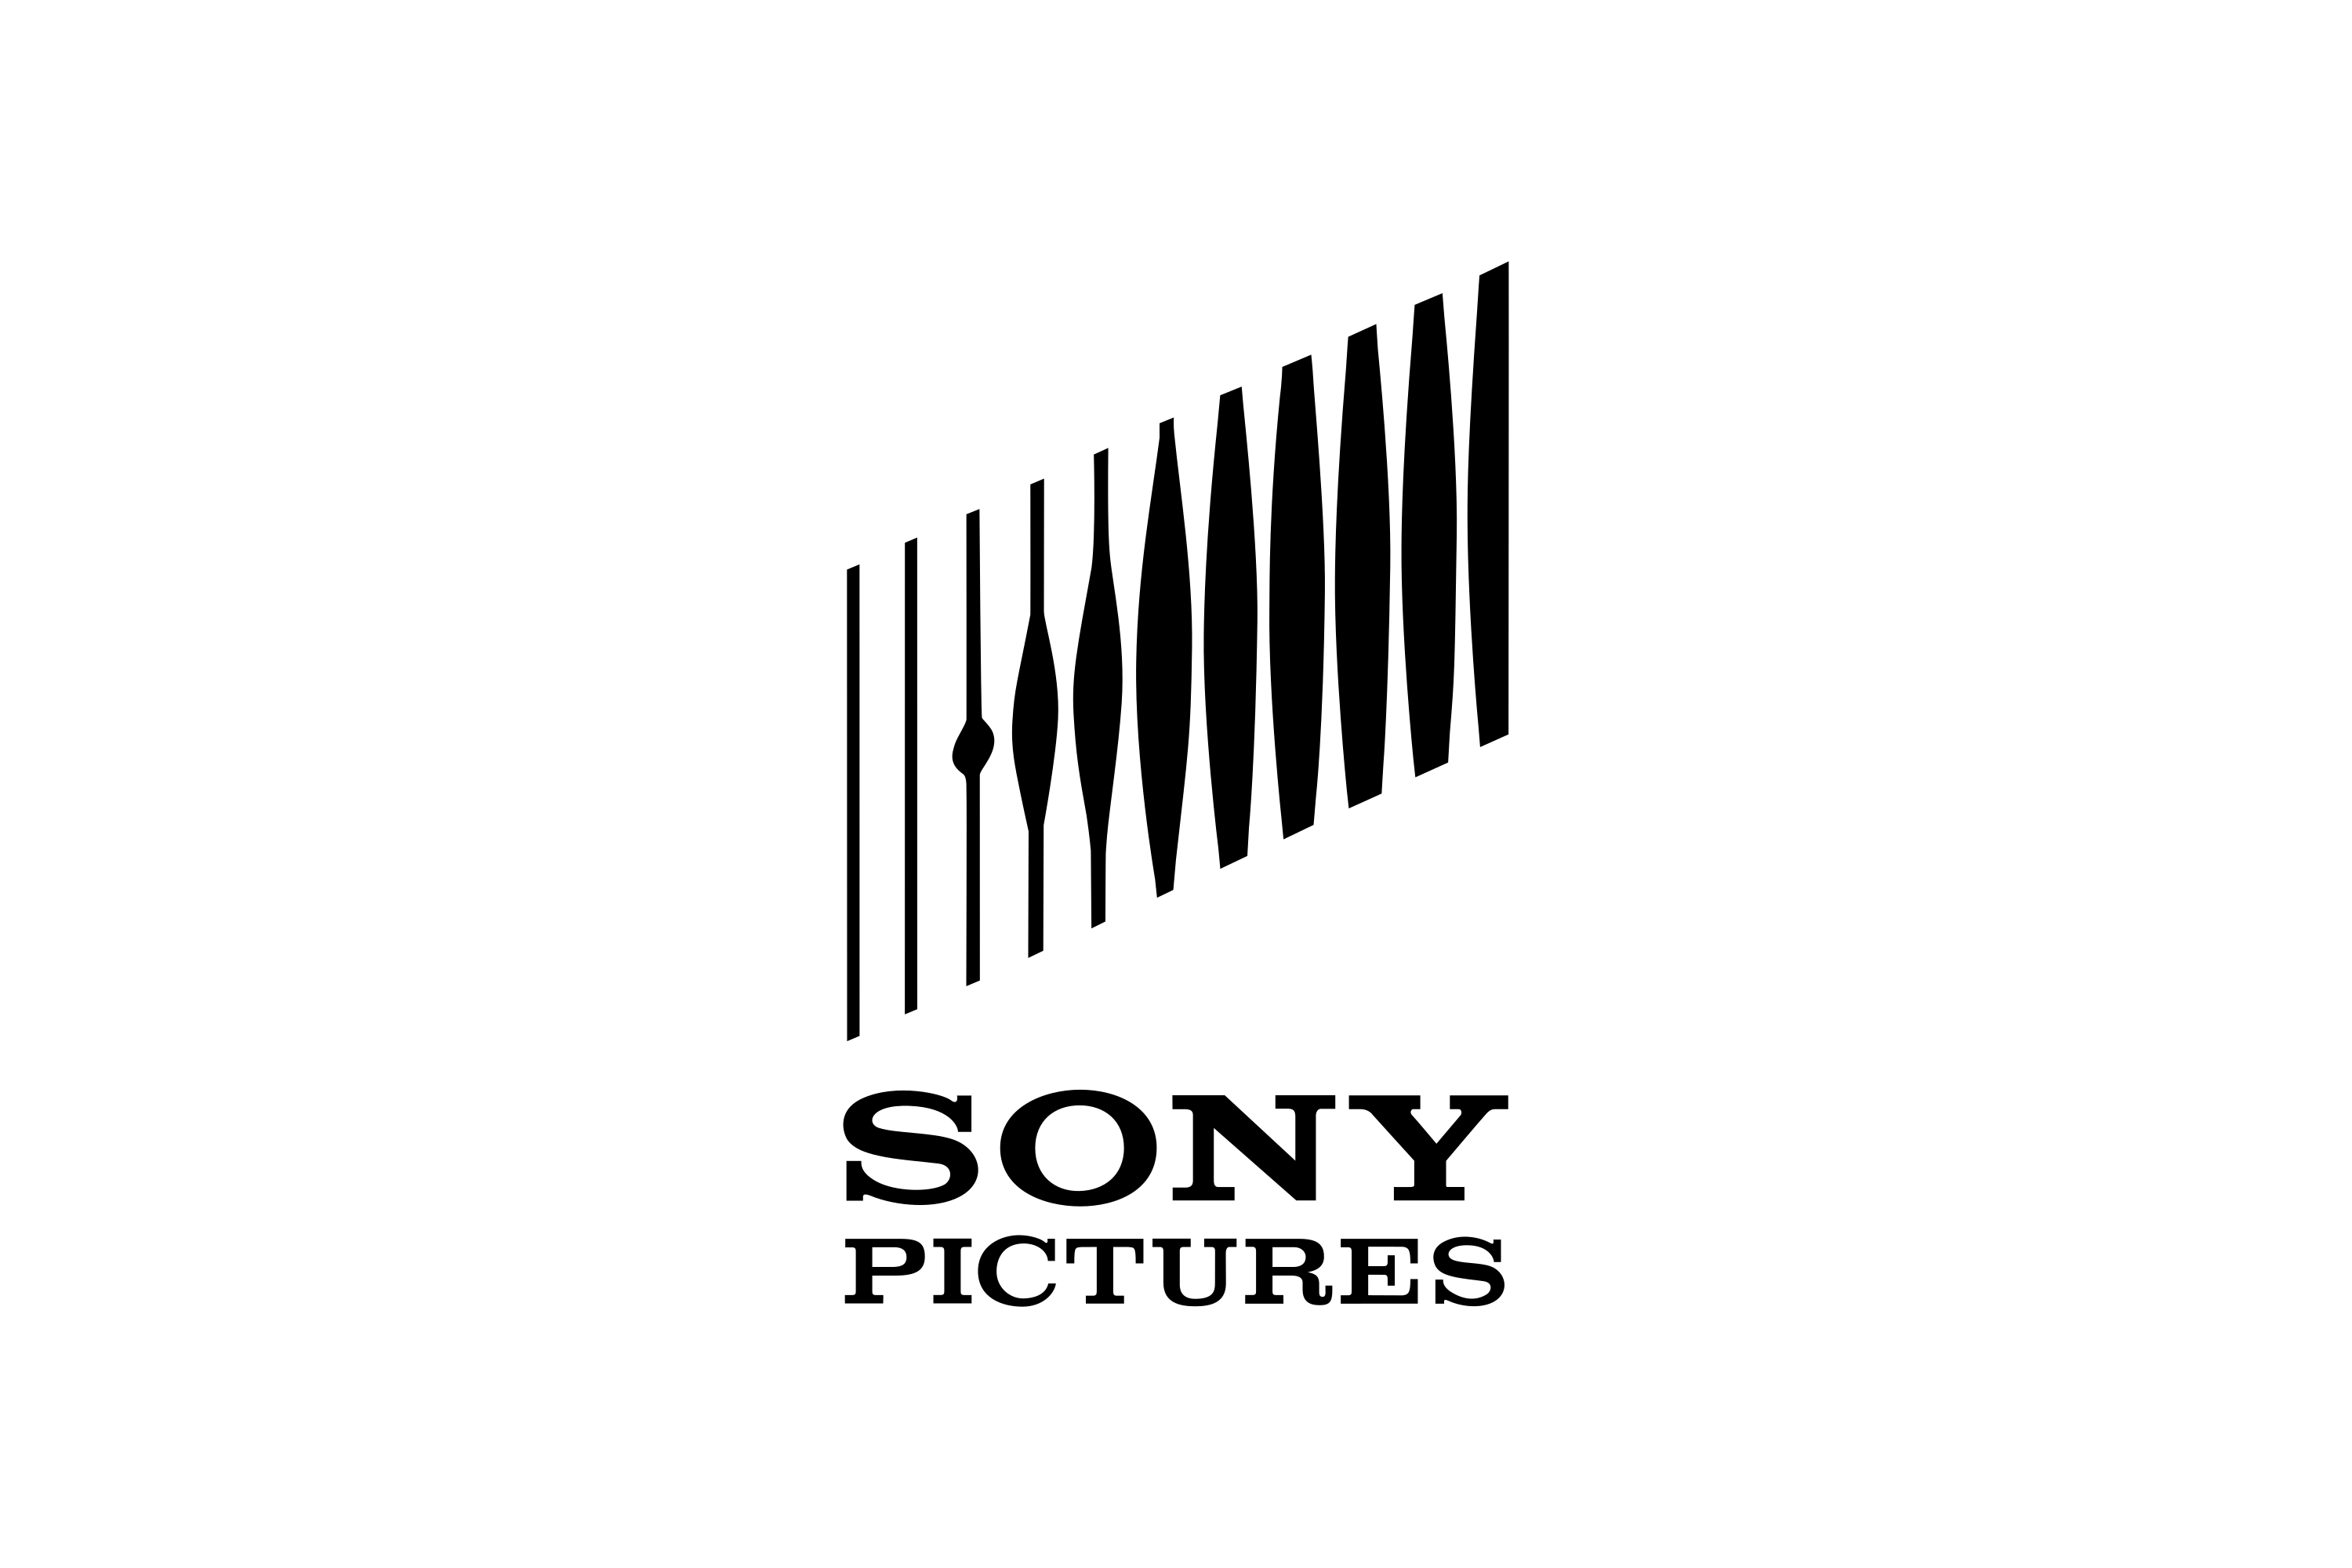 Download Sony Pictures Spe Logo In Svg Vector Or Png File Format Logo Wine